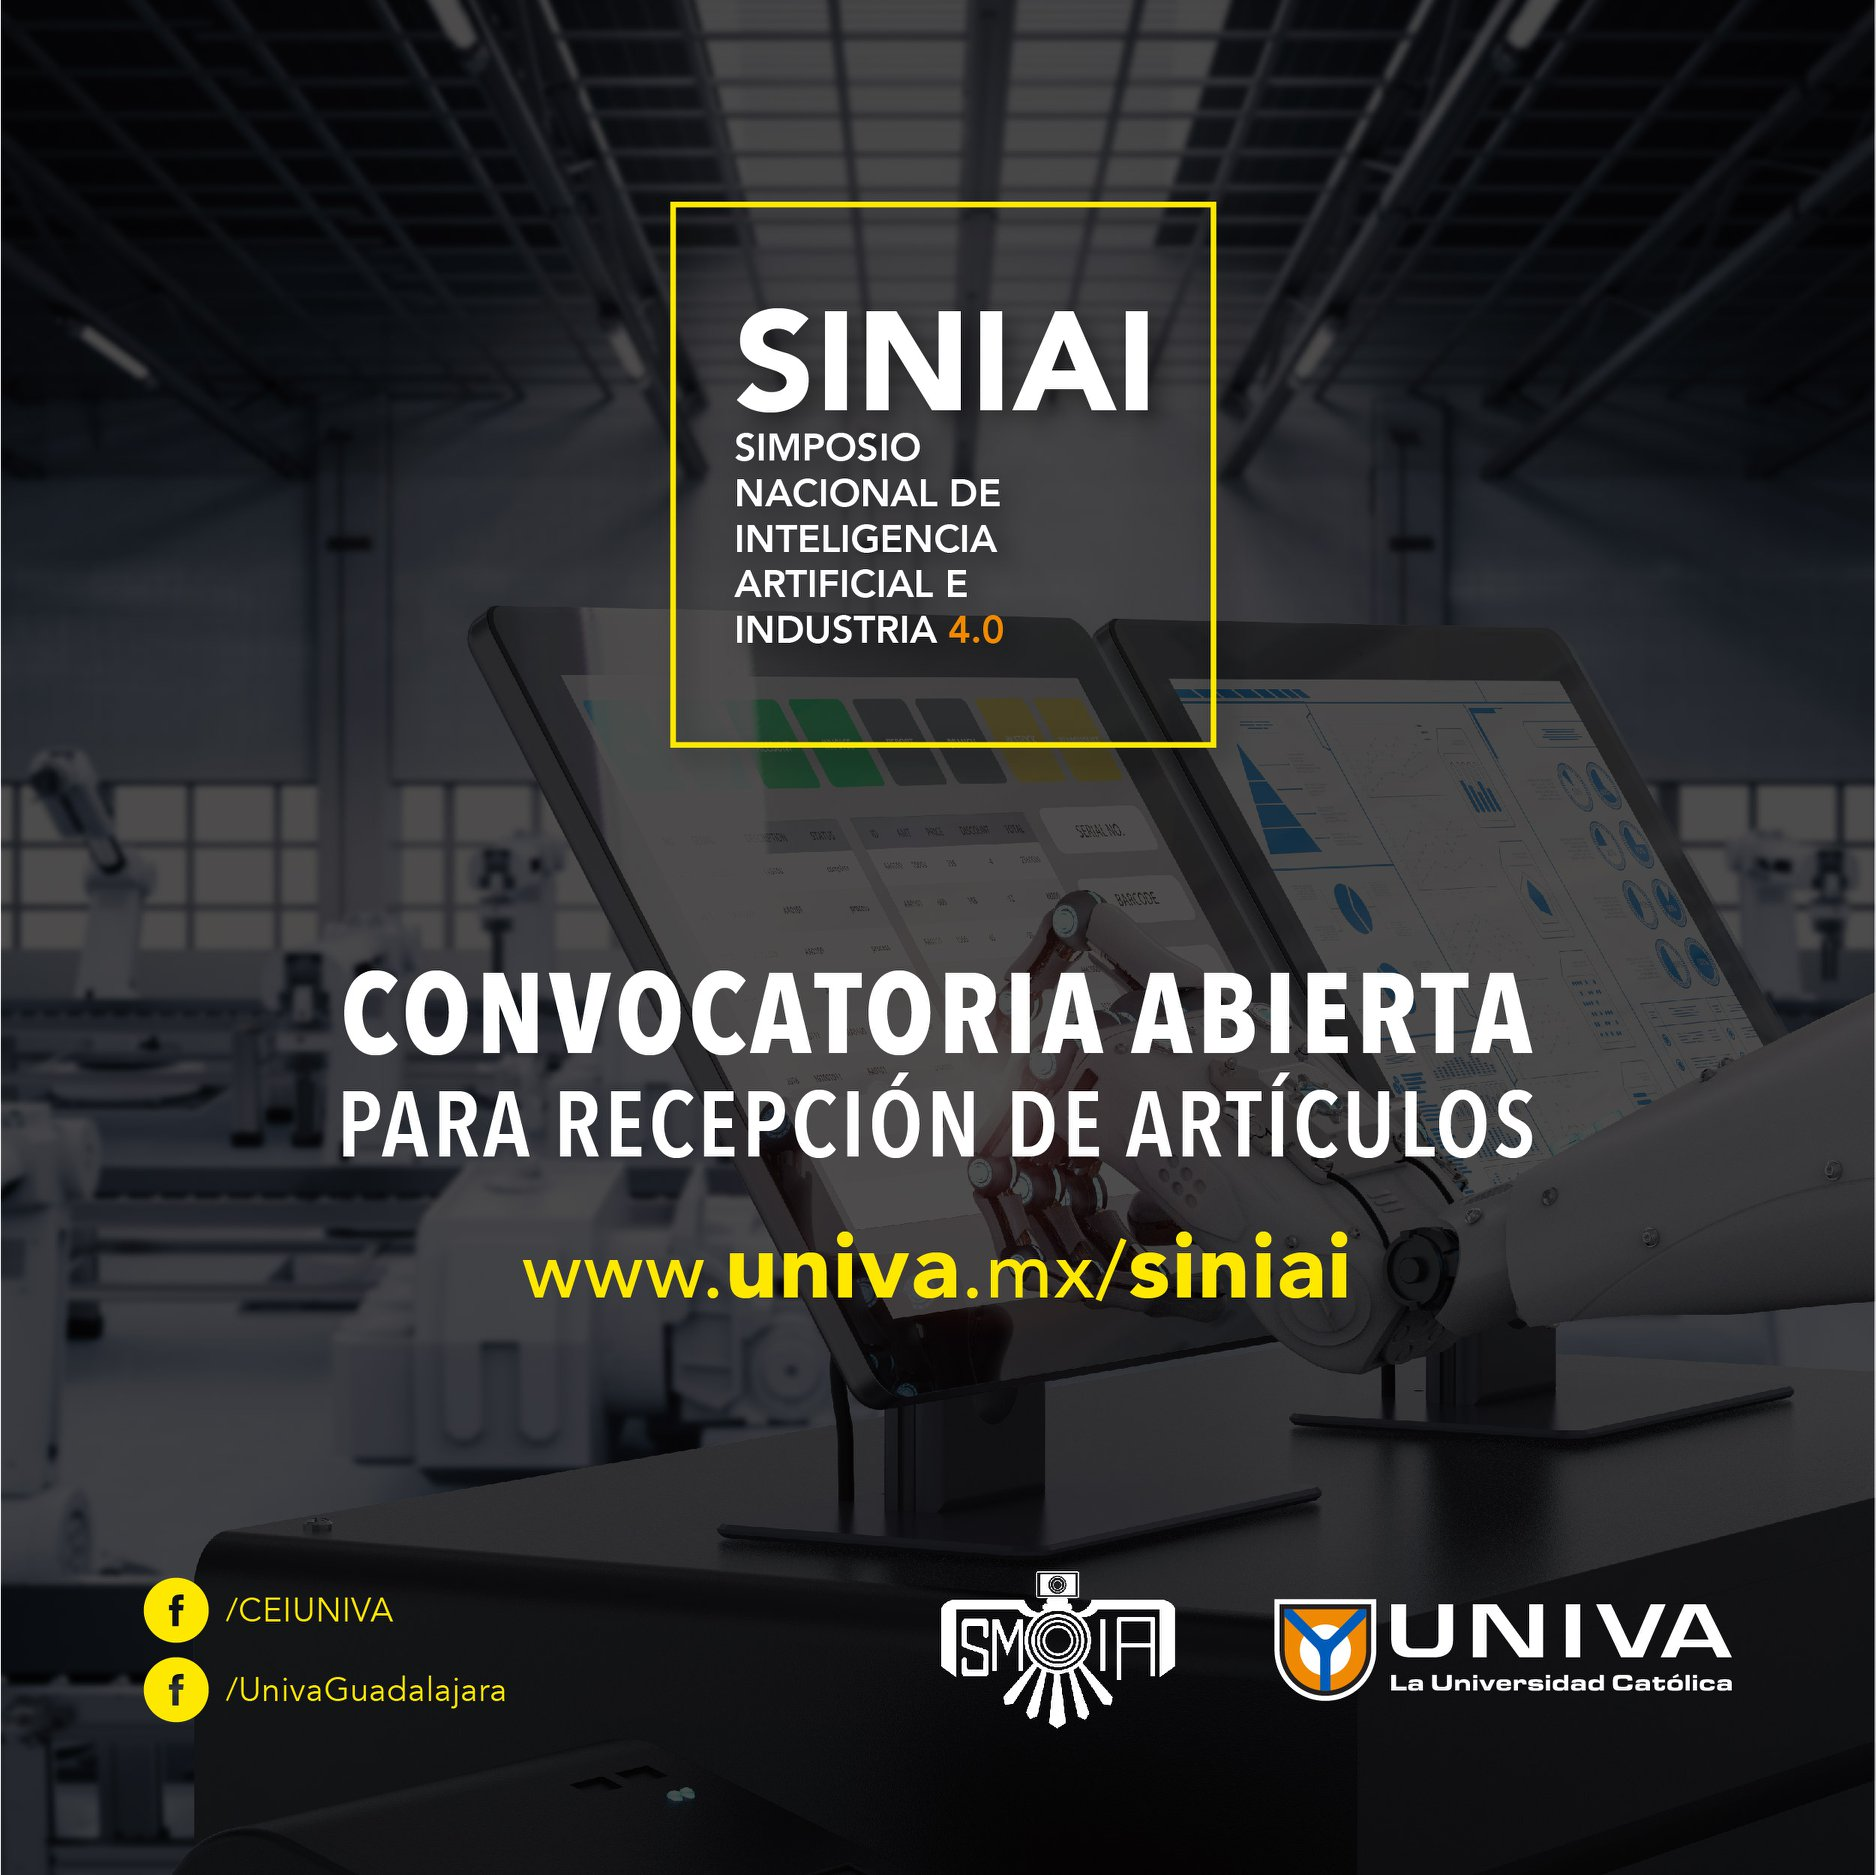 Simposio Nacional de Inteligencia Artificial e Industria 4.0